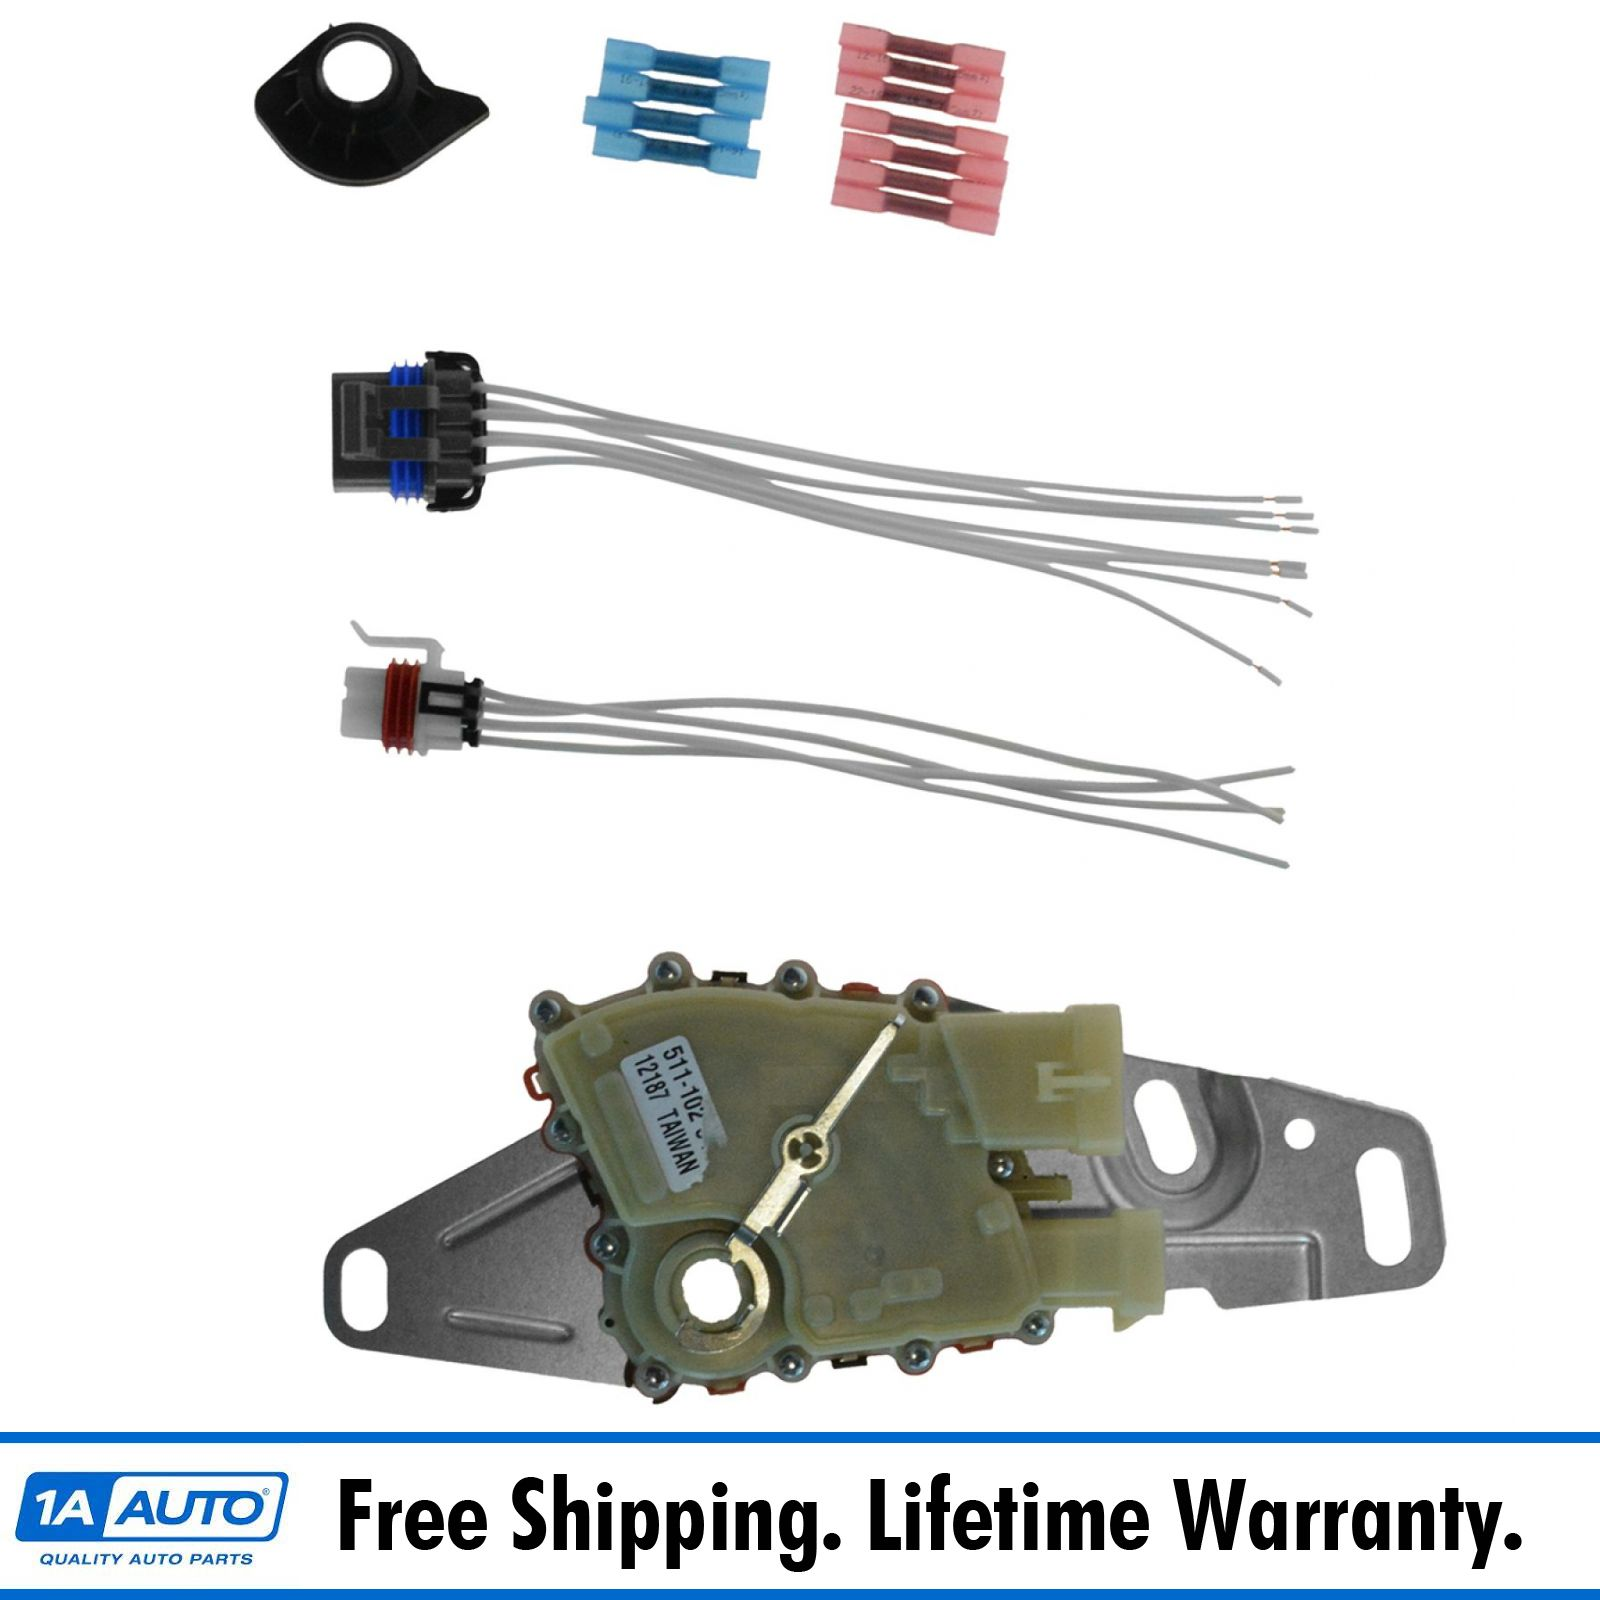 Factory Stereo Wiring On A 03 Dodge 3500 moreover Fusible Link Location 98 Neon in addition Trailer Wiring Diagram 2002 Chevy 1500 moreover Scion Xa Body Parts moreover 02 Trailblazer Stereo Wiring Diagram. on 2004 dodge neon wiring diagram